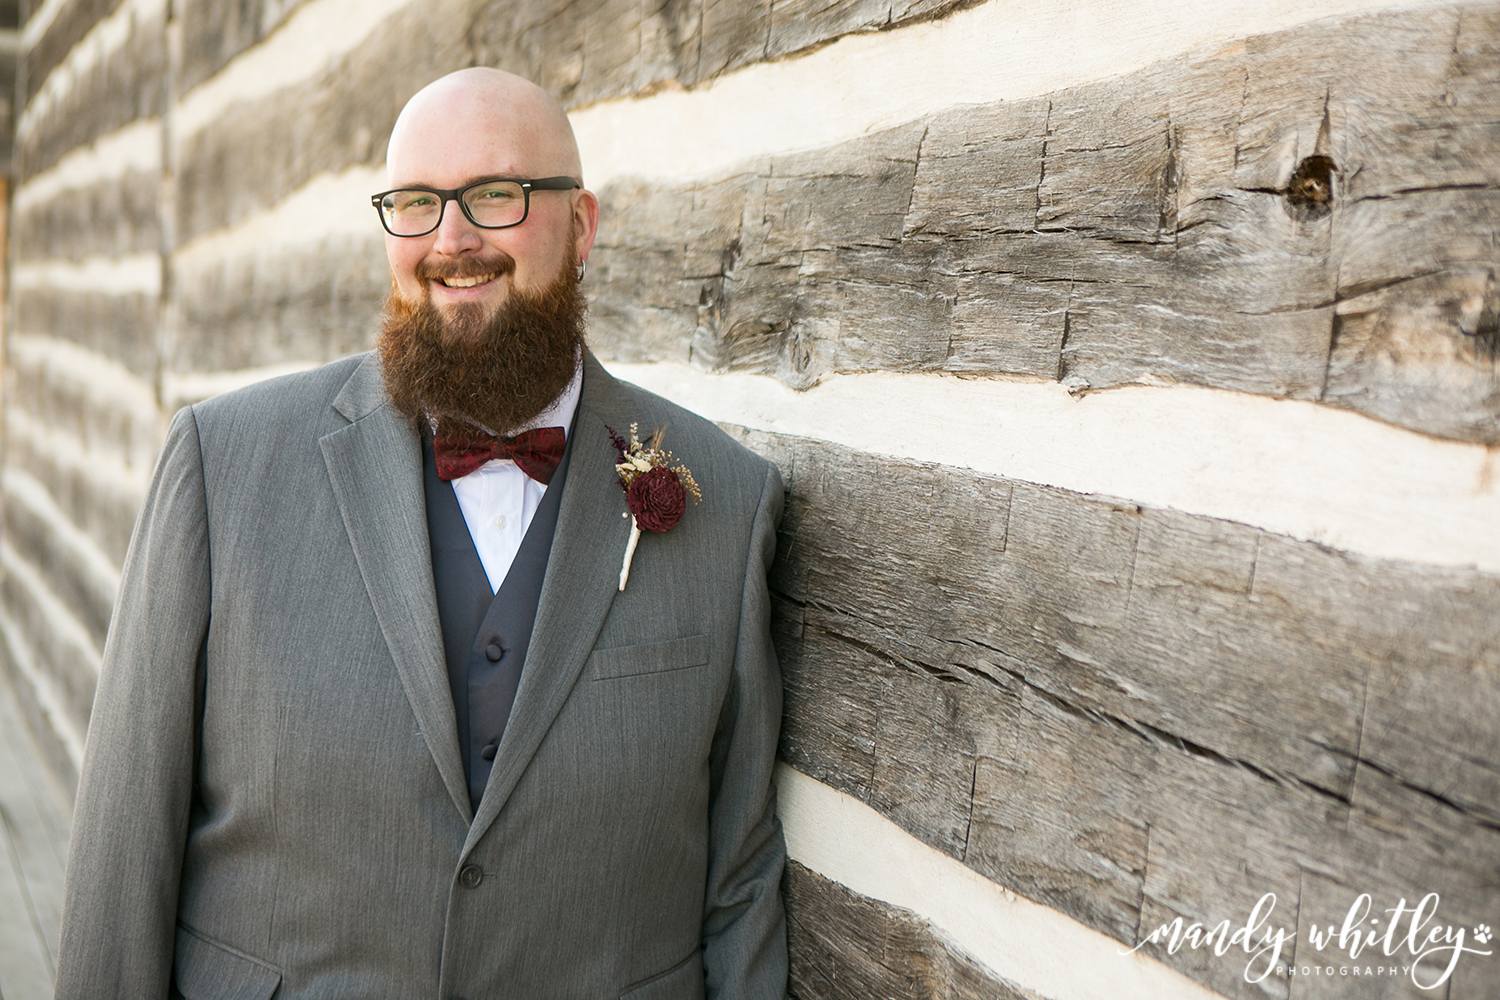 Elopement Photography in Nashville